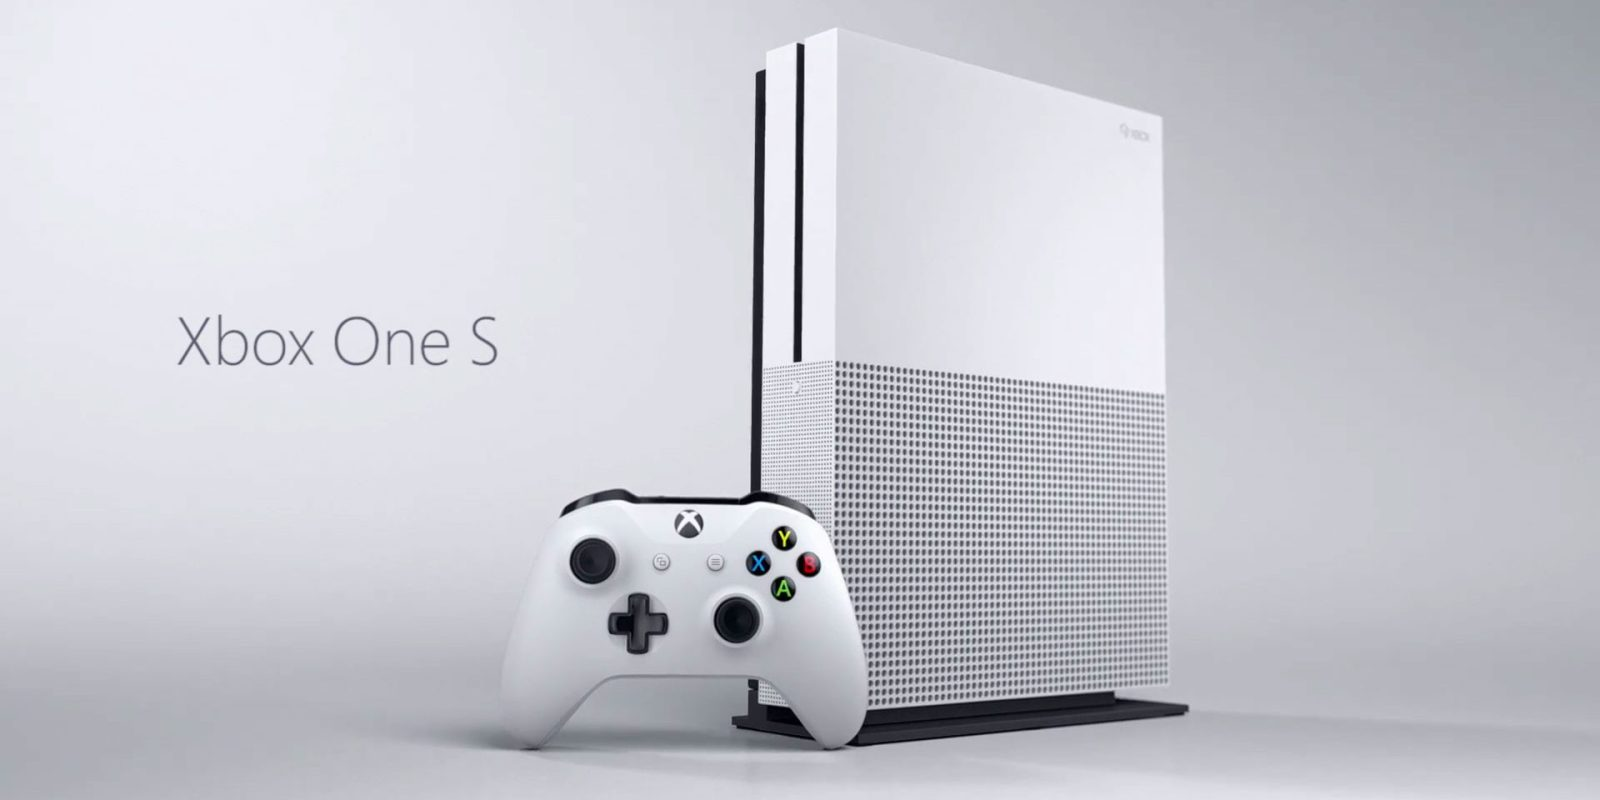 The Xbox One S 1TB just hit the best price of the summer at $169 shipped, more